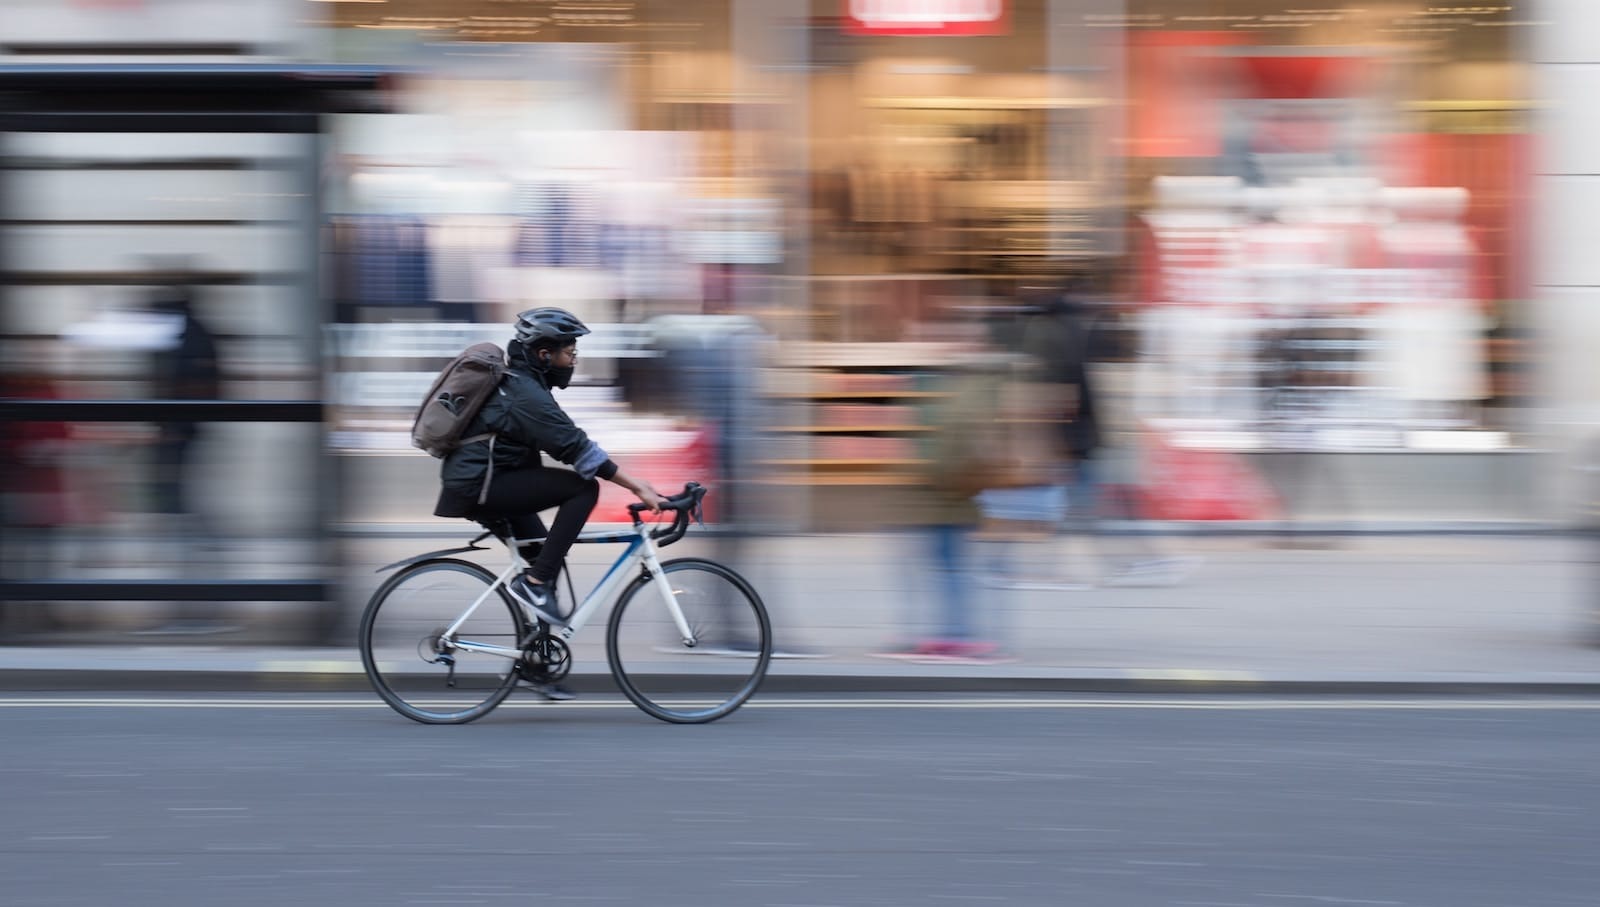 person bicycling in city blurred